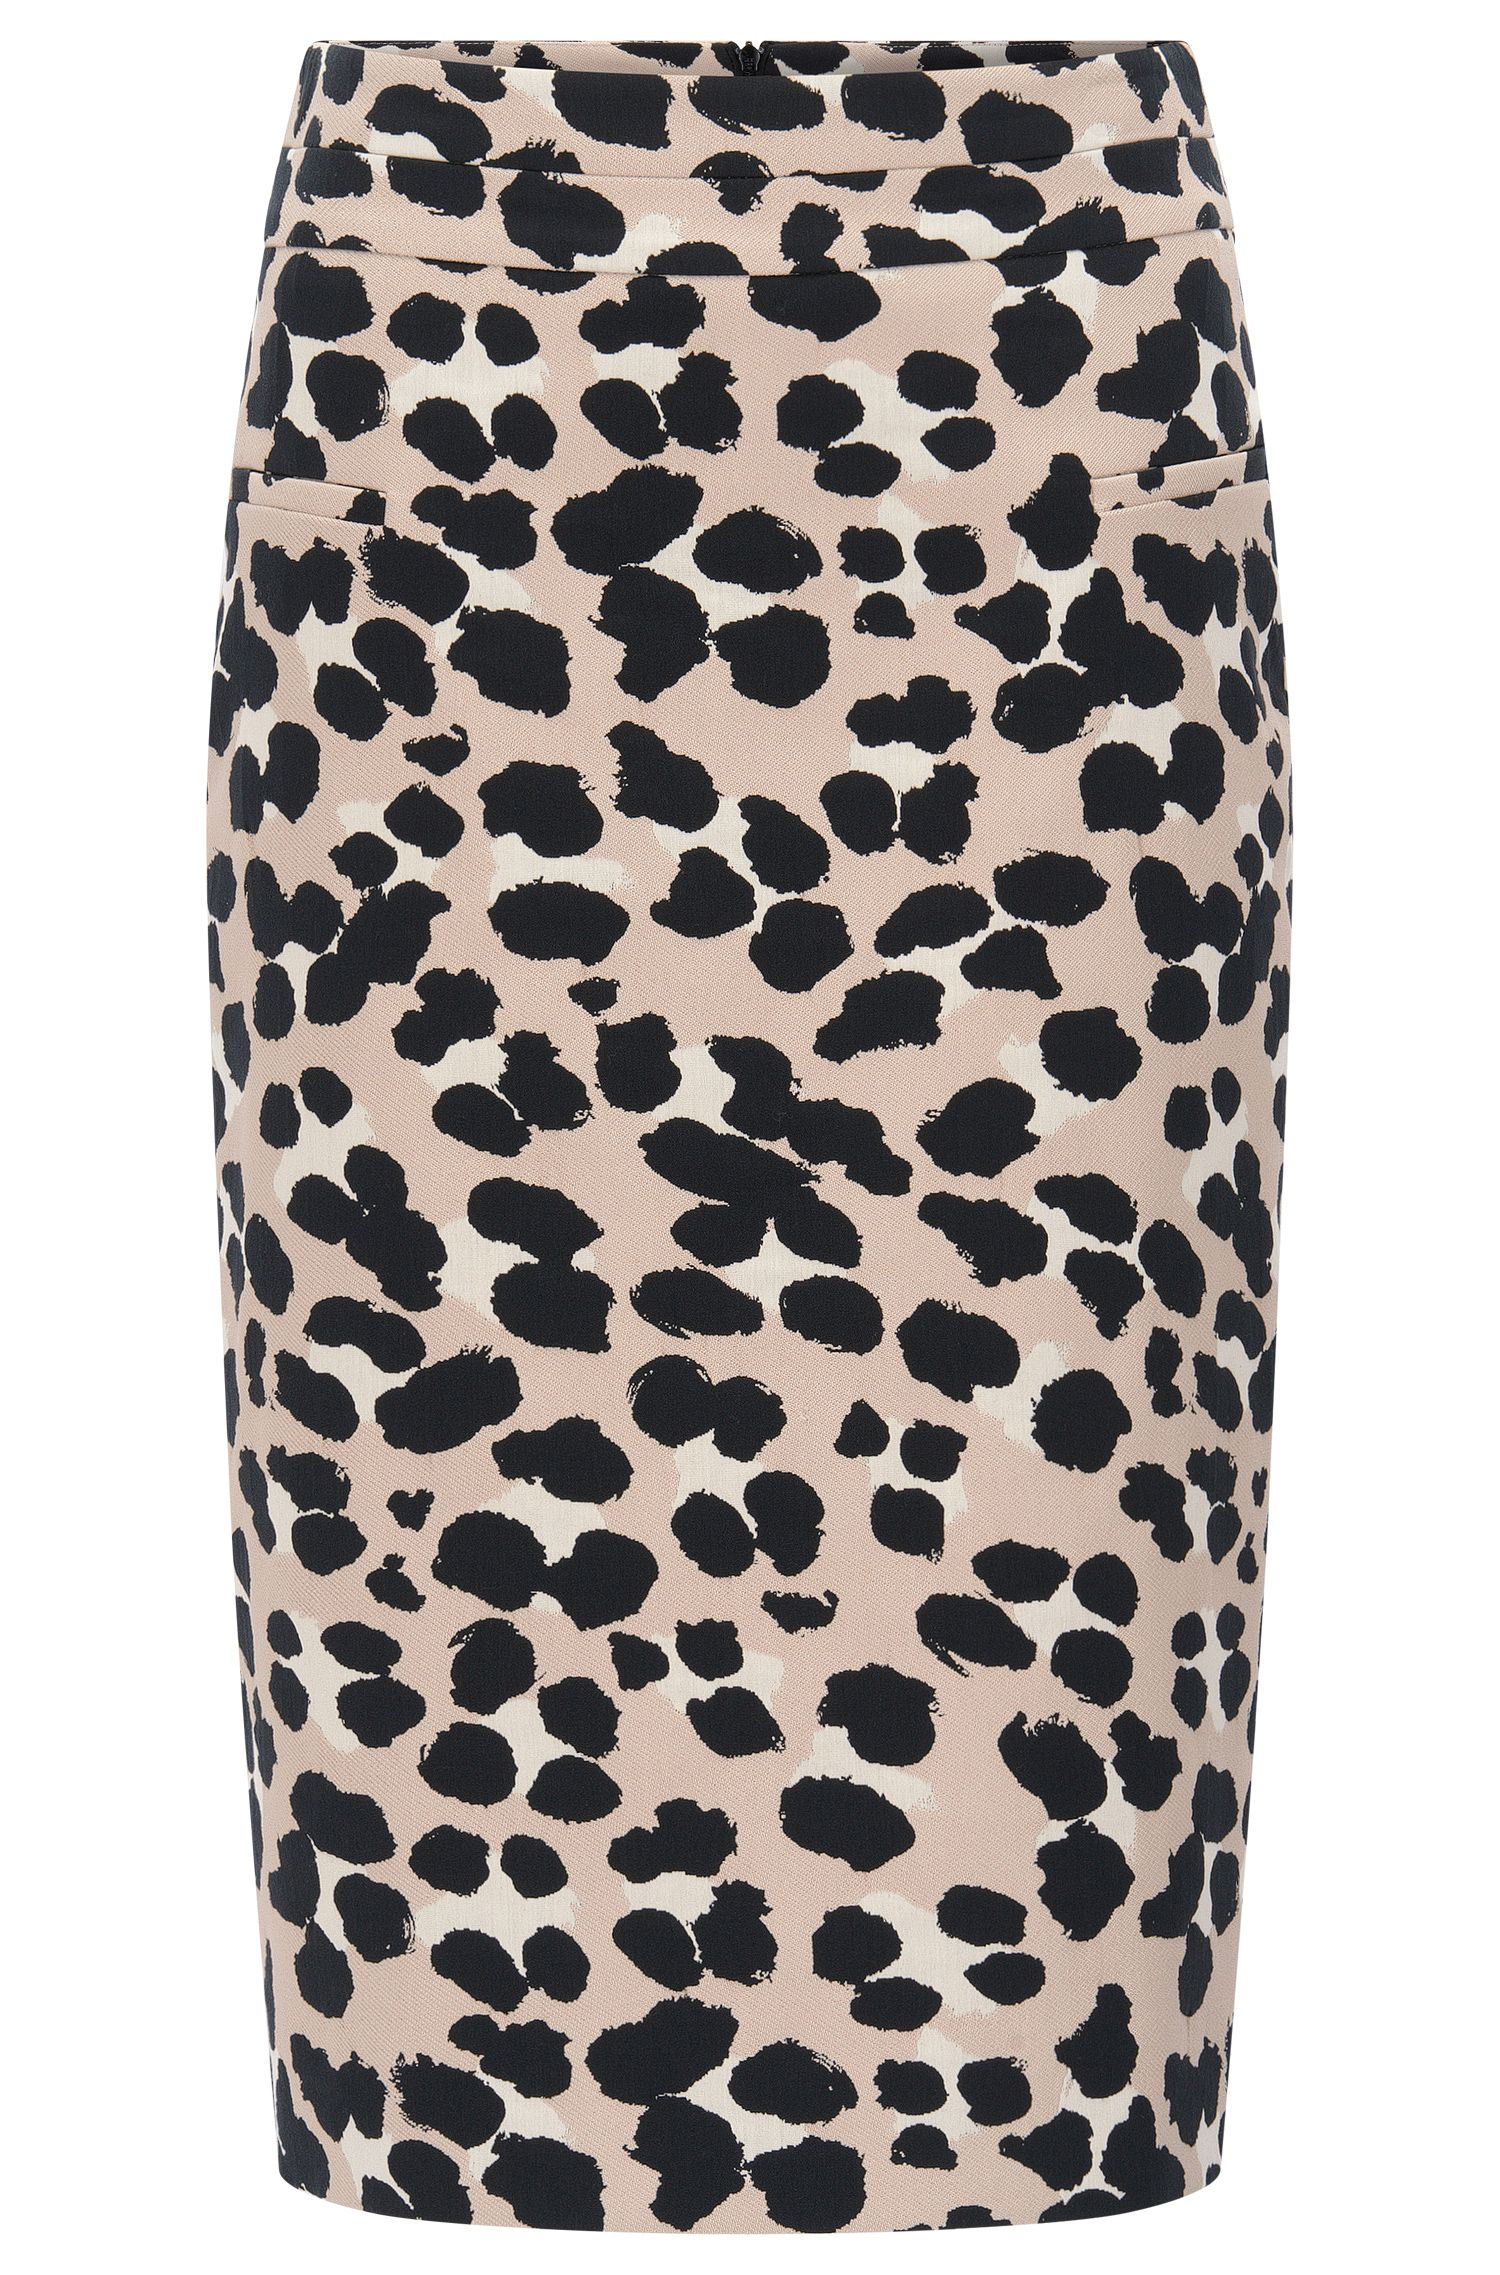 Pencil skirt in cheetah-print jacquard